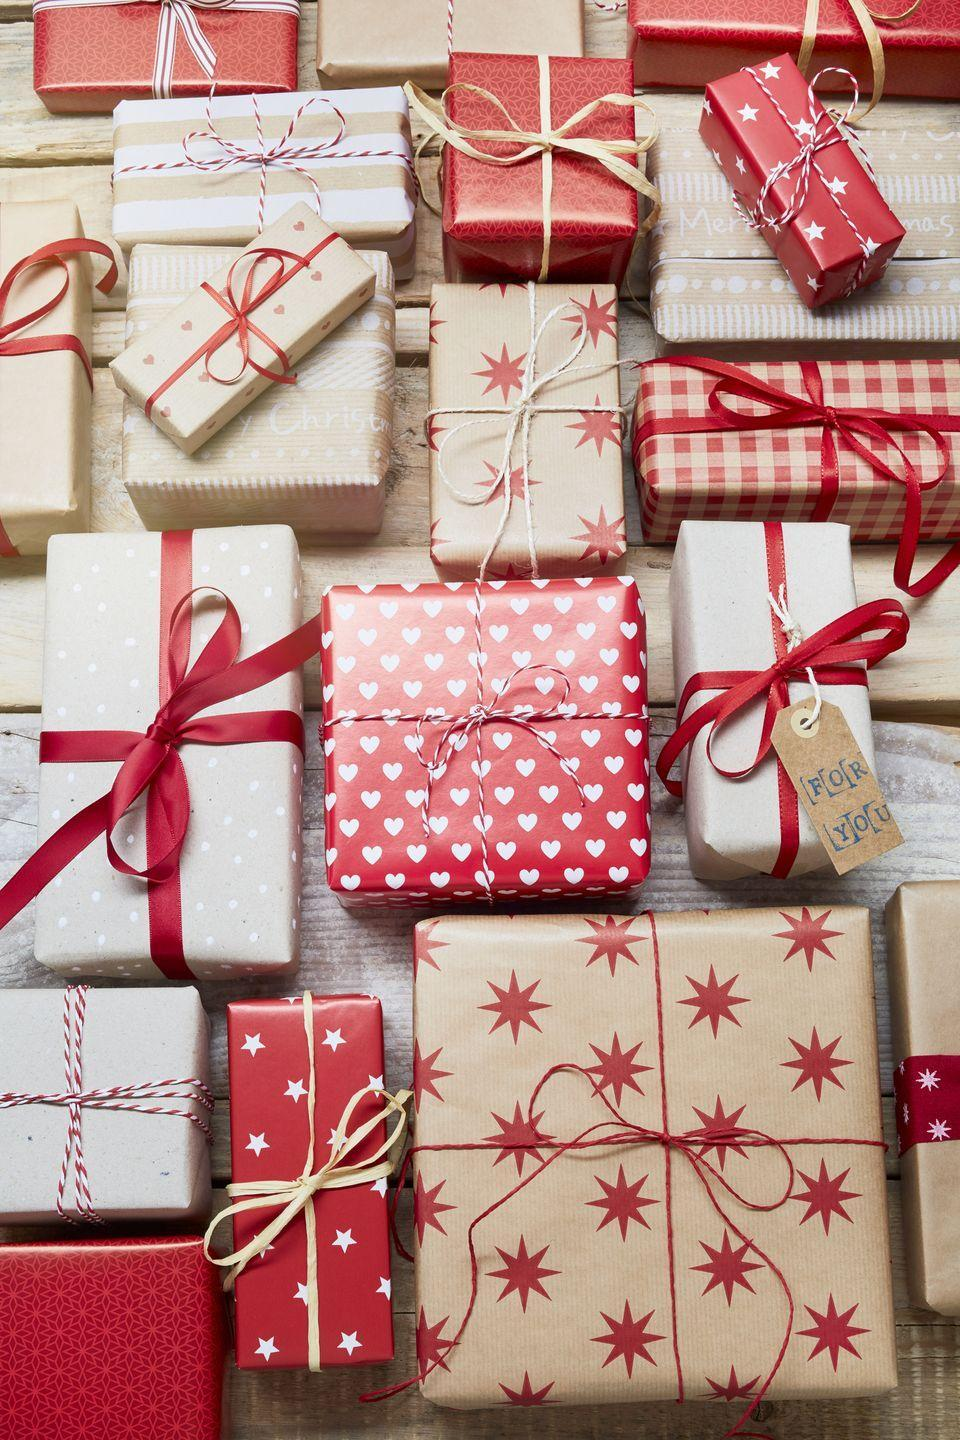 "<p>For big families or groups of friends, consider starting a <a href=""https://www.countryliving.com/uk/create/craft/a25305281/plastic-free-secret-santa-gifts/"" rel=""nofollow noopener"" target=""_blank"" data-ylk=""slk:Secret Santa"" class=""link rapid-noclick-resp"">Secret Santa</a> tradition where each person picks another's name at random and focuses on their gift only (instead of everyone buying for everybody). This way, you can put more thought, money, and time into finding them something they'll truly love. Plus, it's fun to see the surprised looks when recipients try to guess who their mystery gift giver is. </p>"